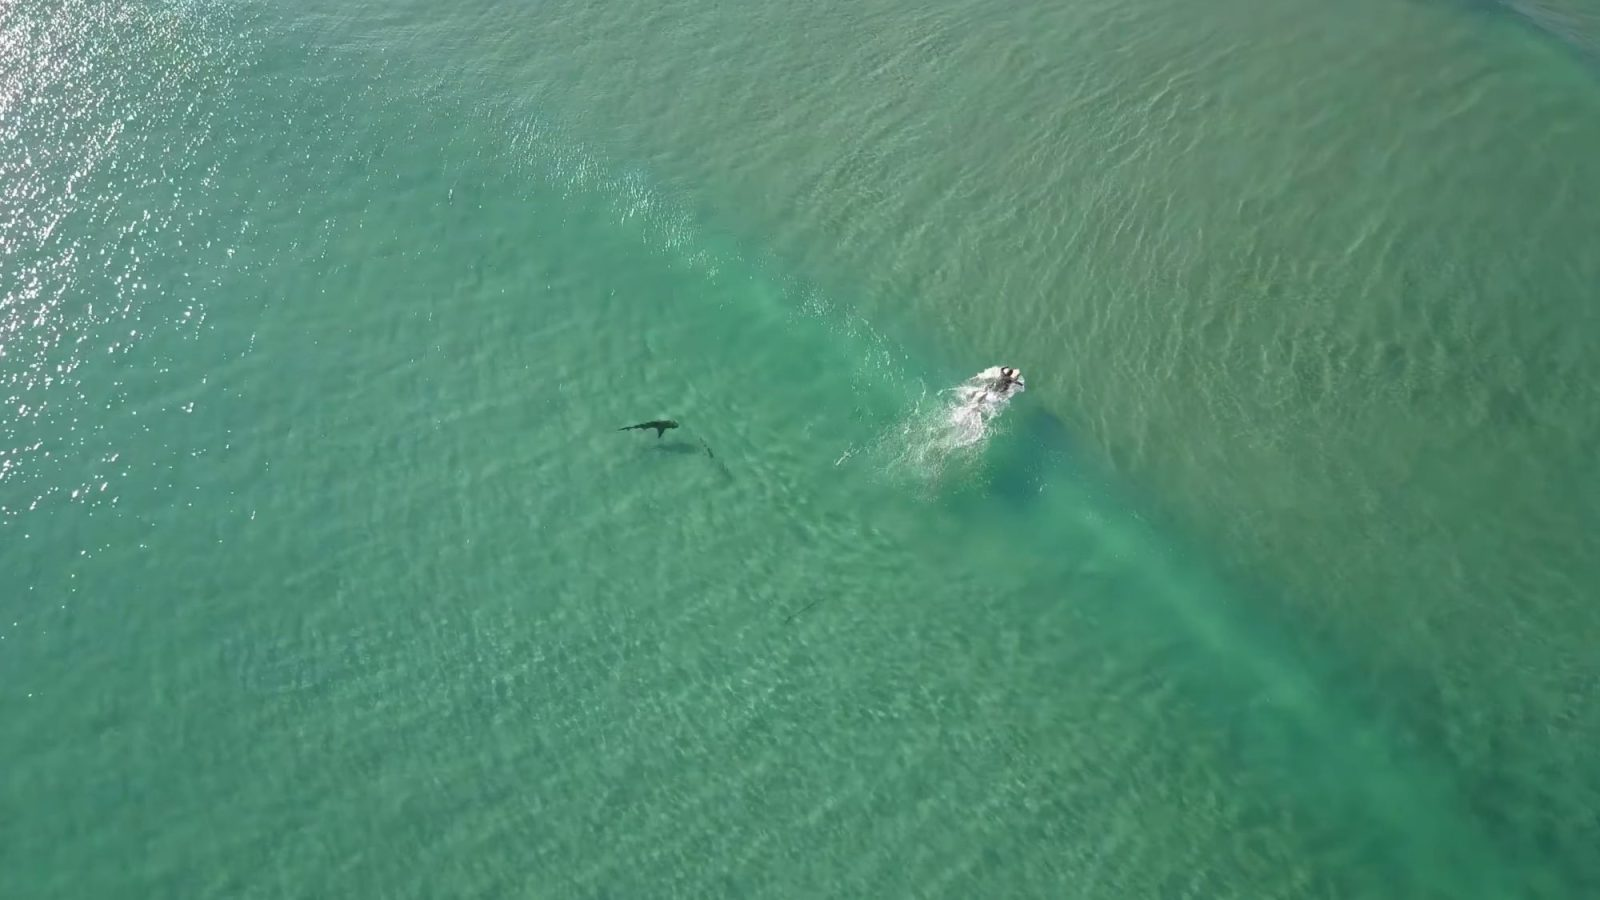 drone footage shows sharks